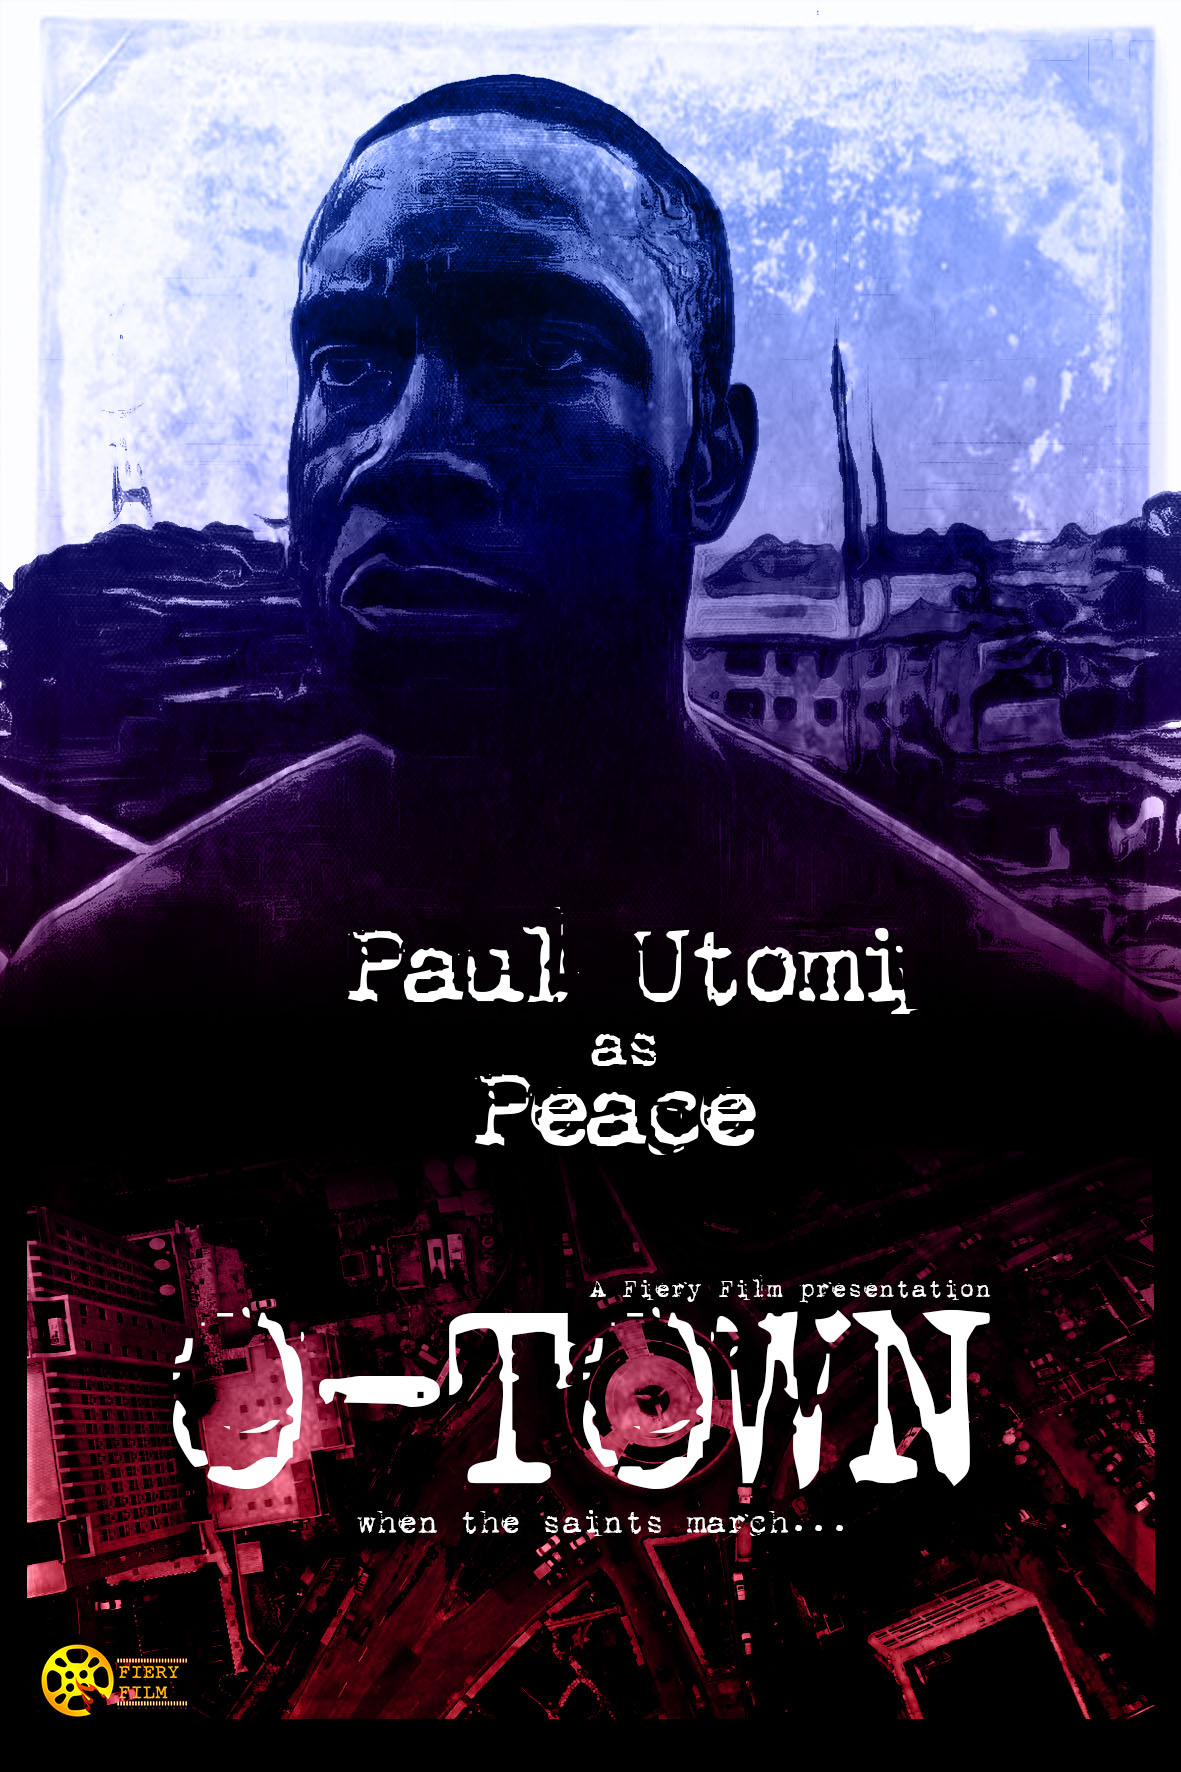 Paul Utomi as Peace